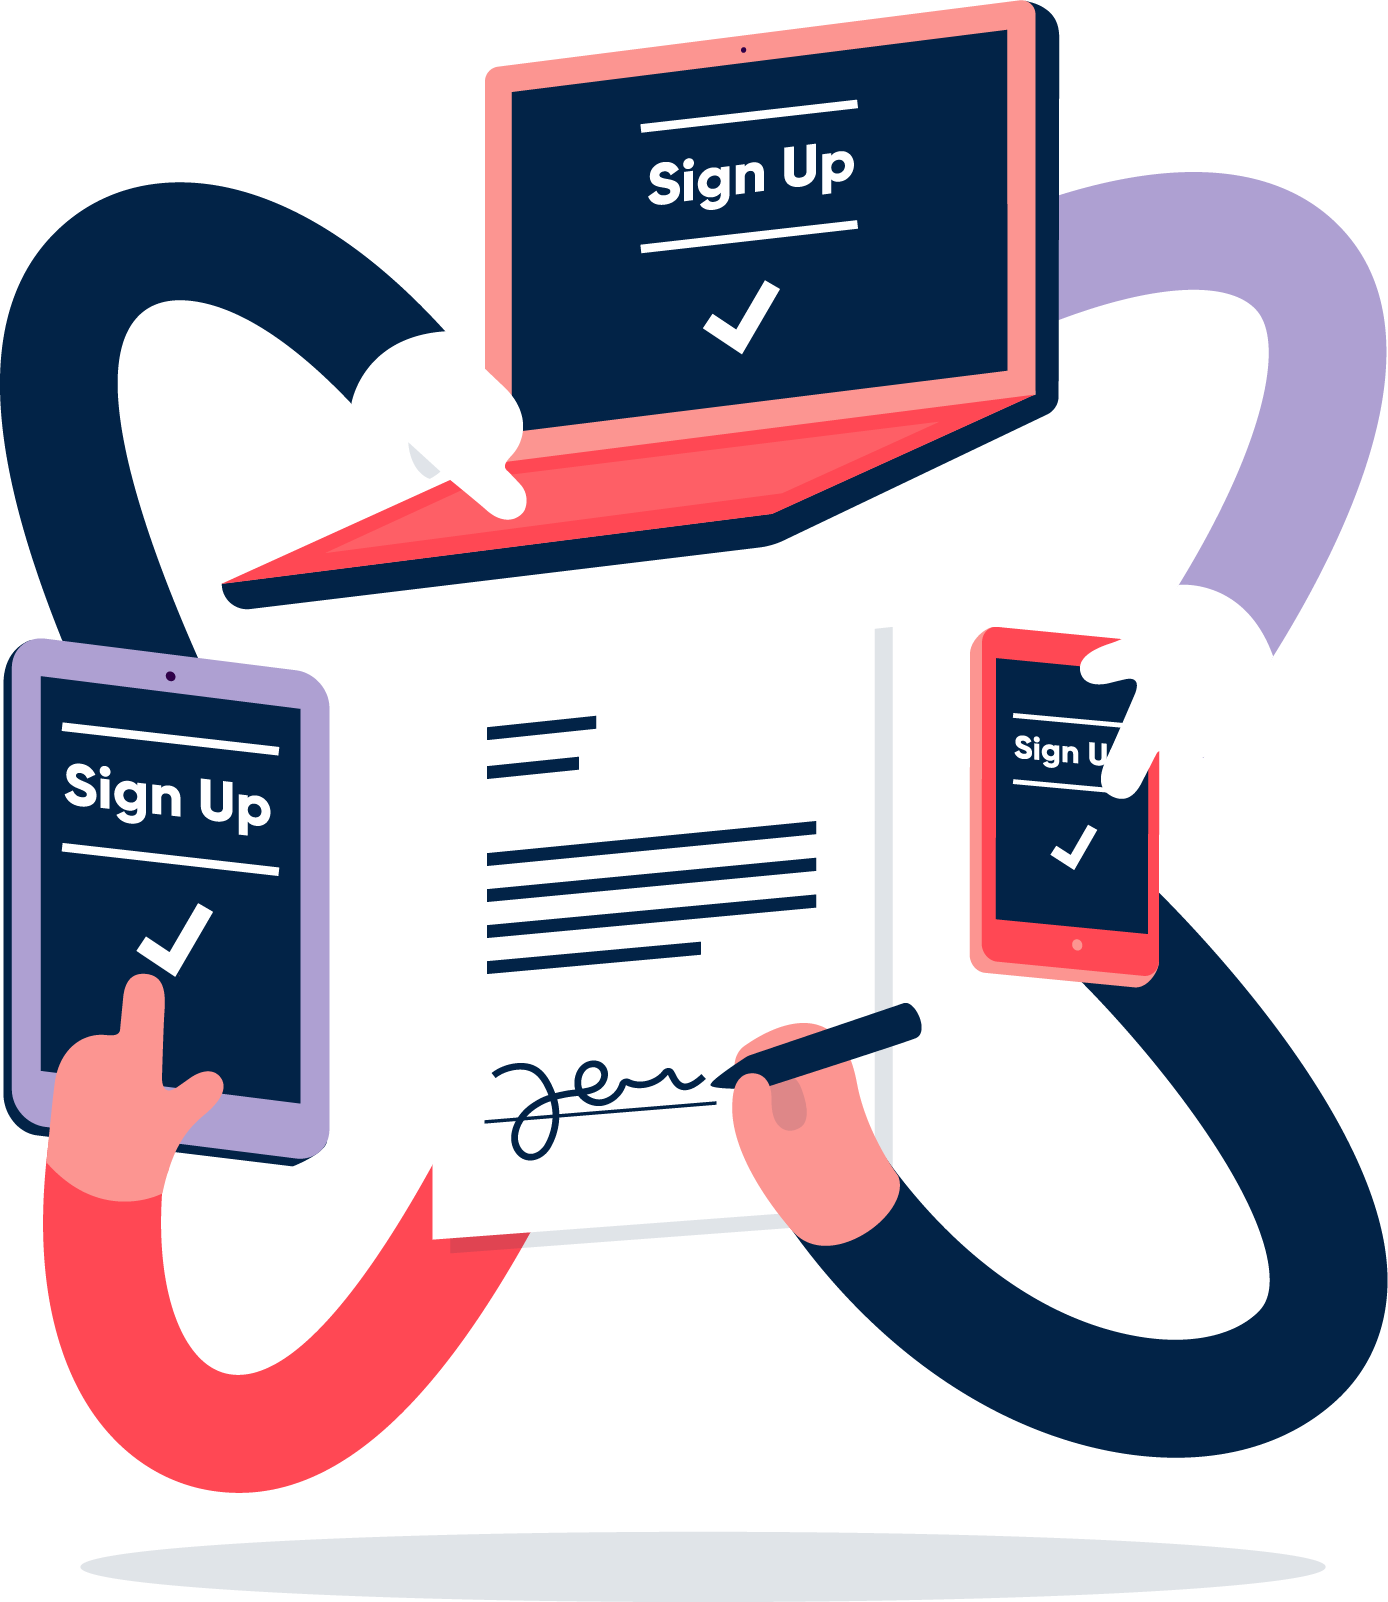 Sign up illustration